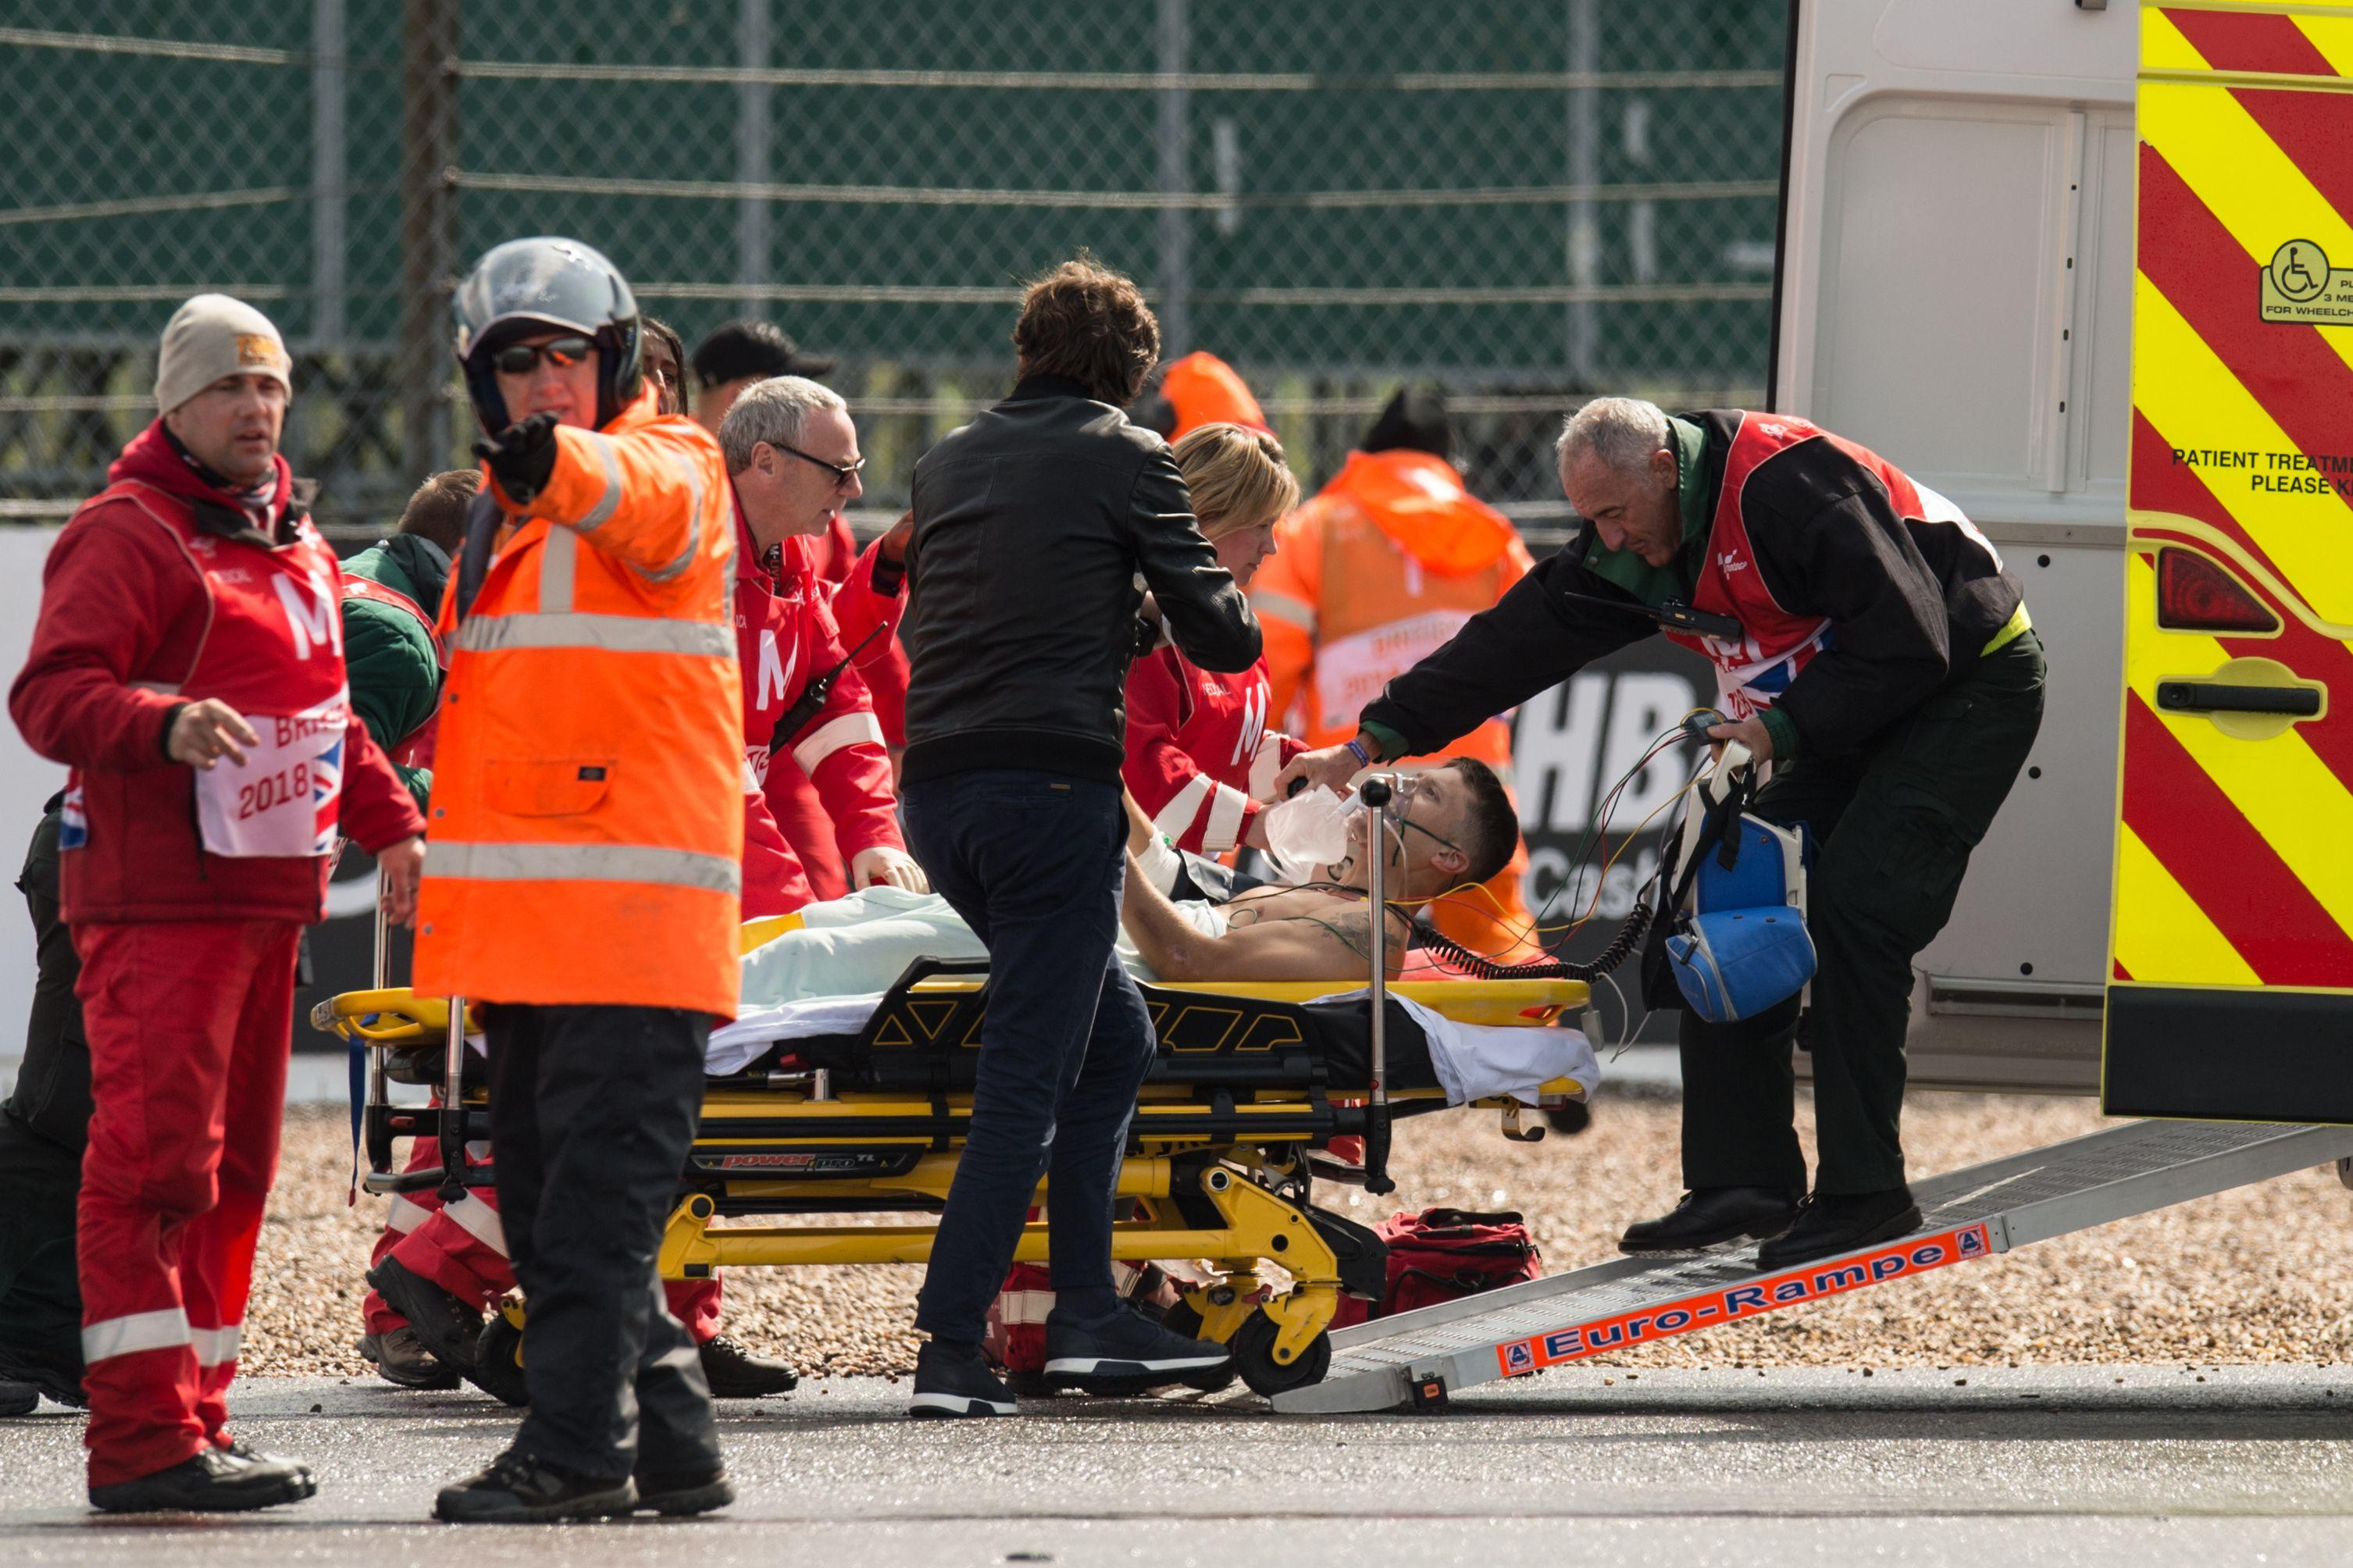 Qualifying for the British MotoGP was delayed following the accident involving Tito Rabat